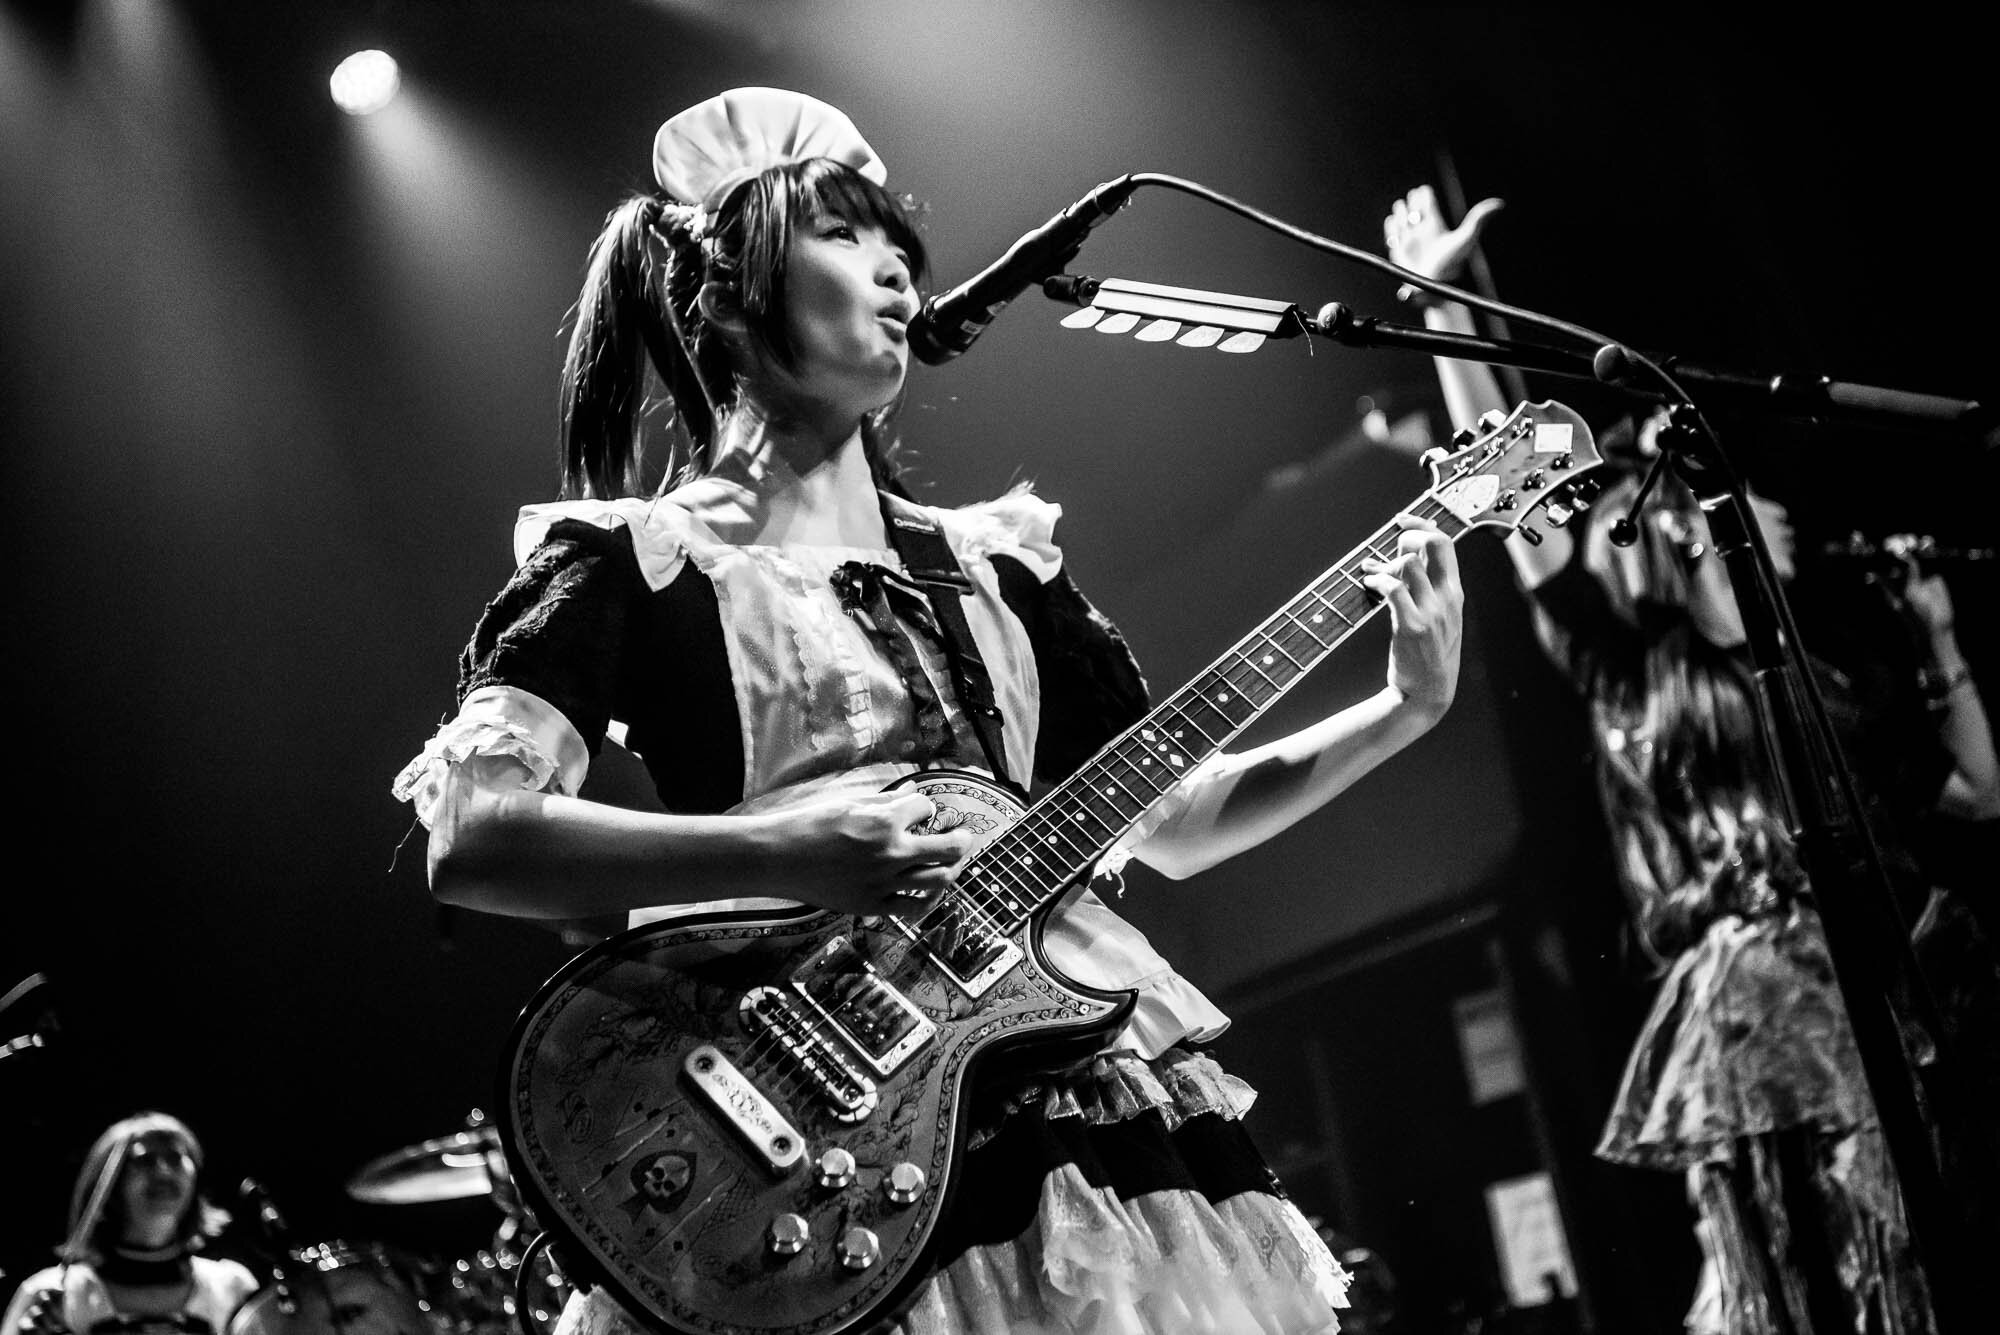 BAND-MAID performing at Gramercy Theatre on Thursday, September 26, 2019.